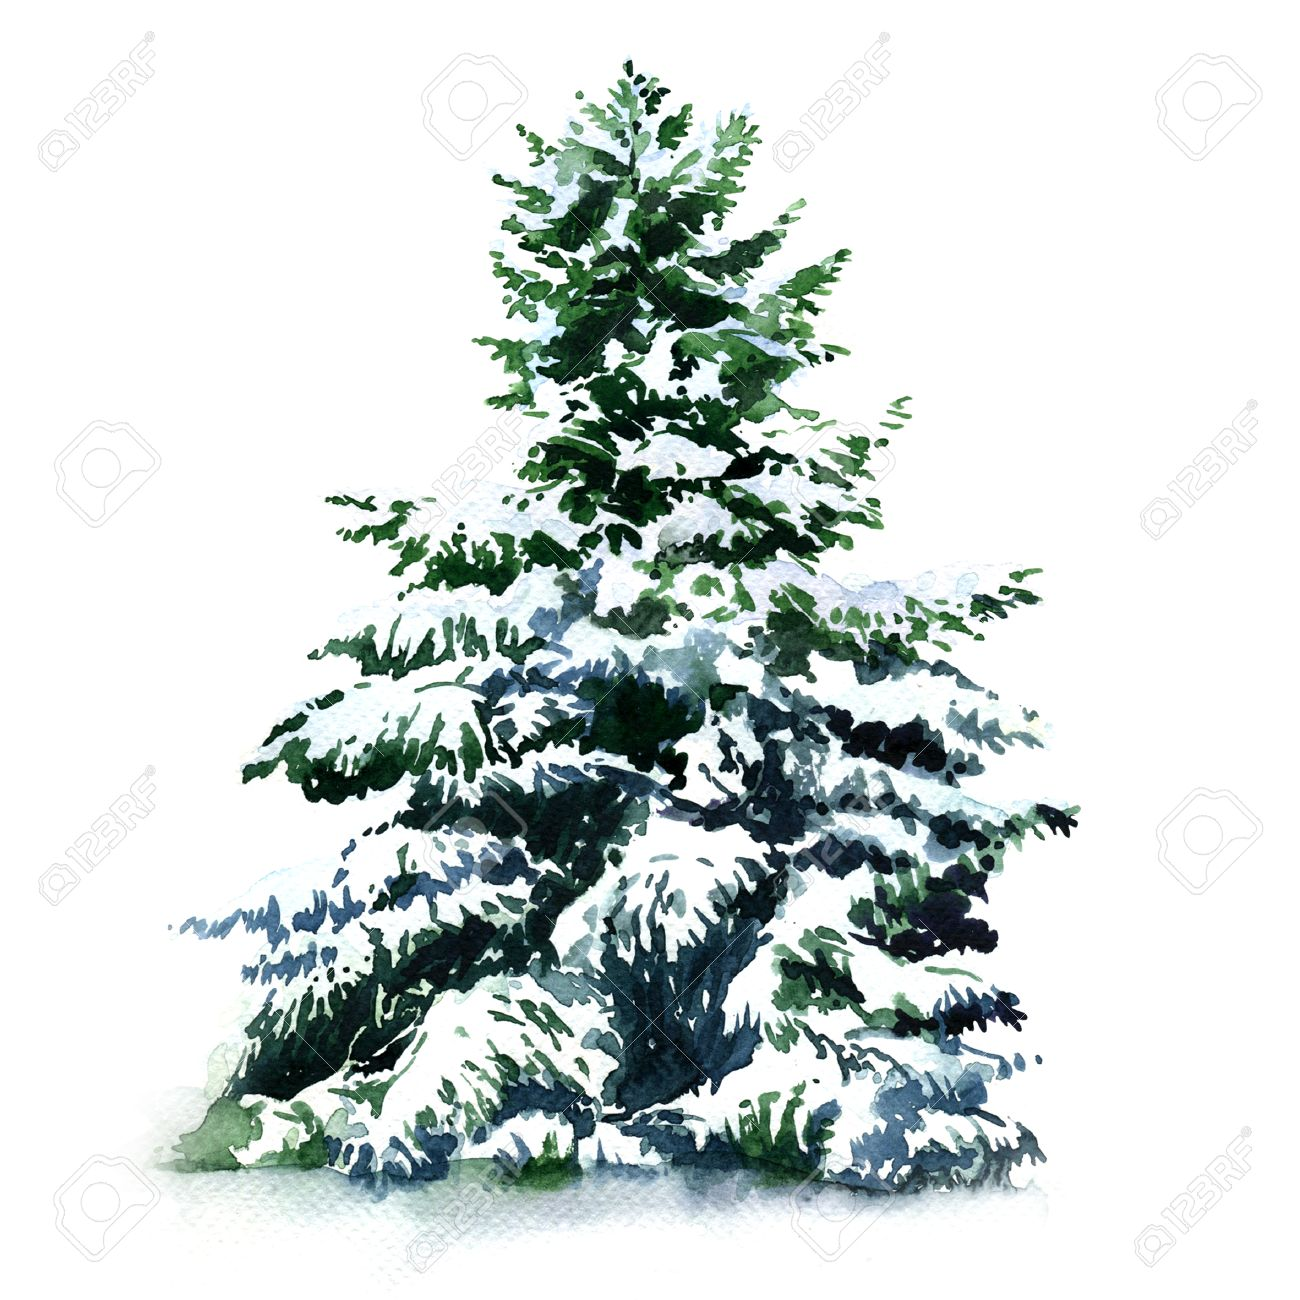 Christmas Tree Covered Snow In Winter Isolated Watercolor Painting